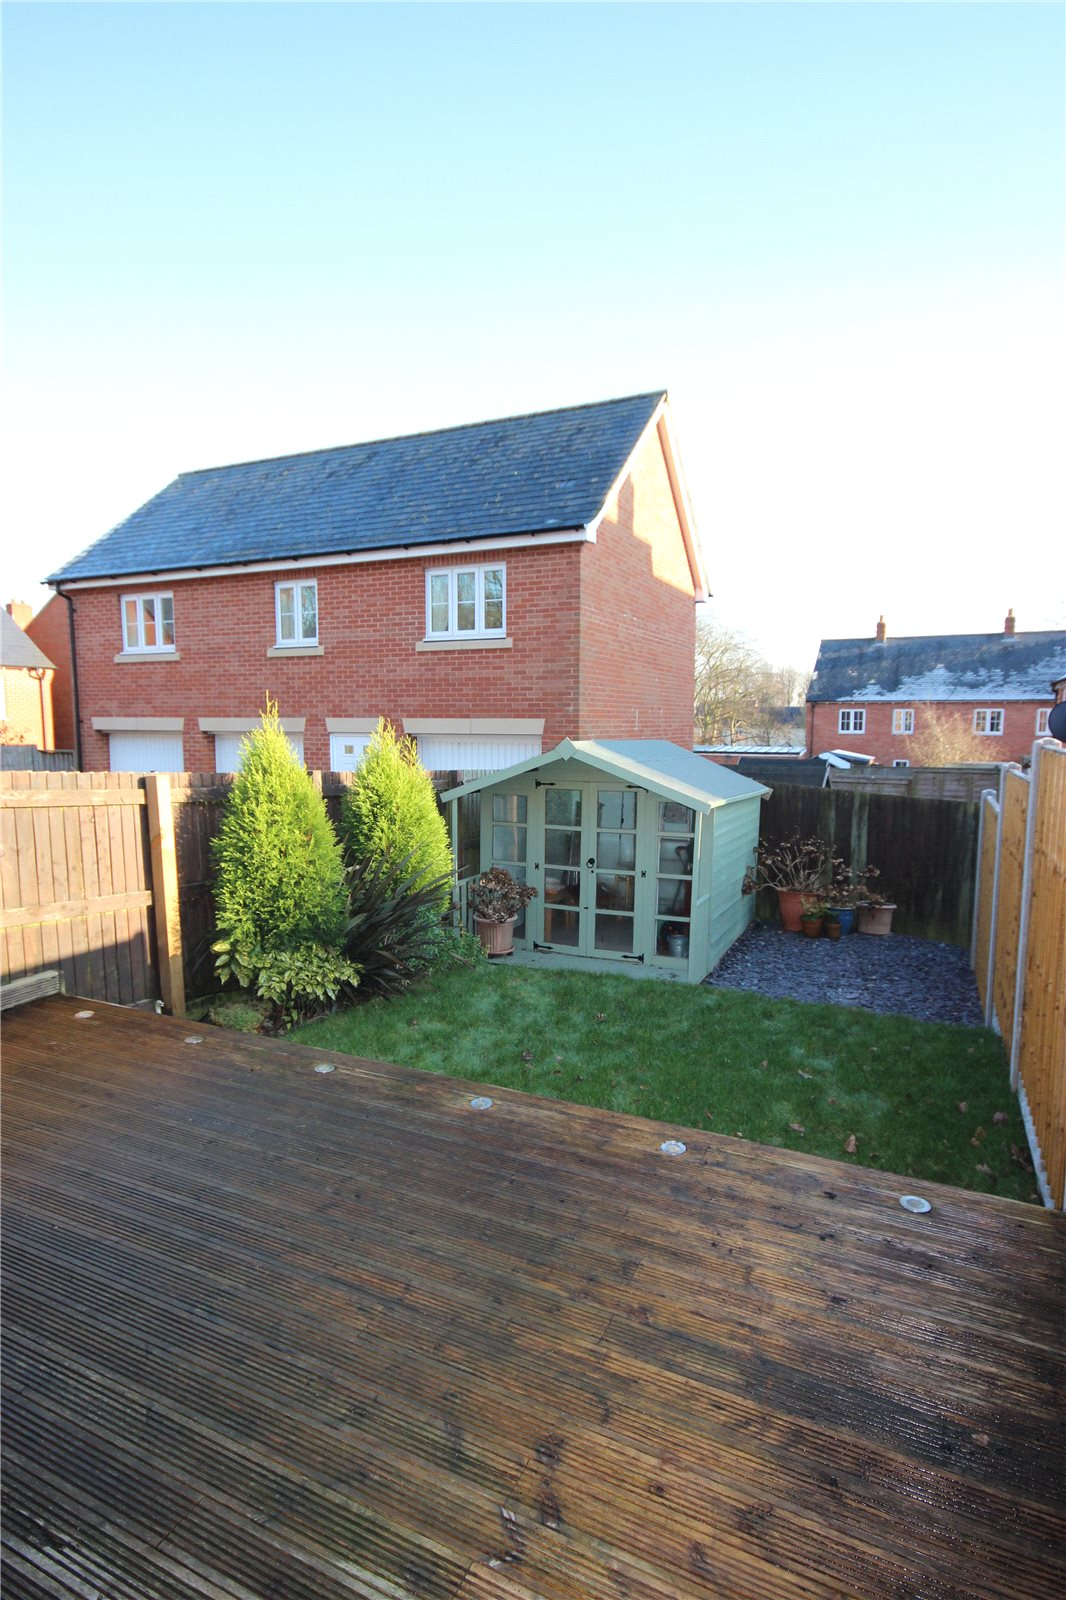 Cj Hole Bradley Stoke 3 Bedroom House To Rent In Hickory